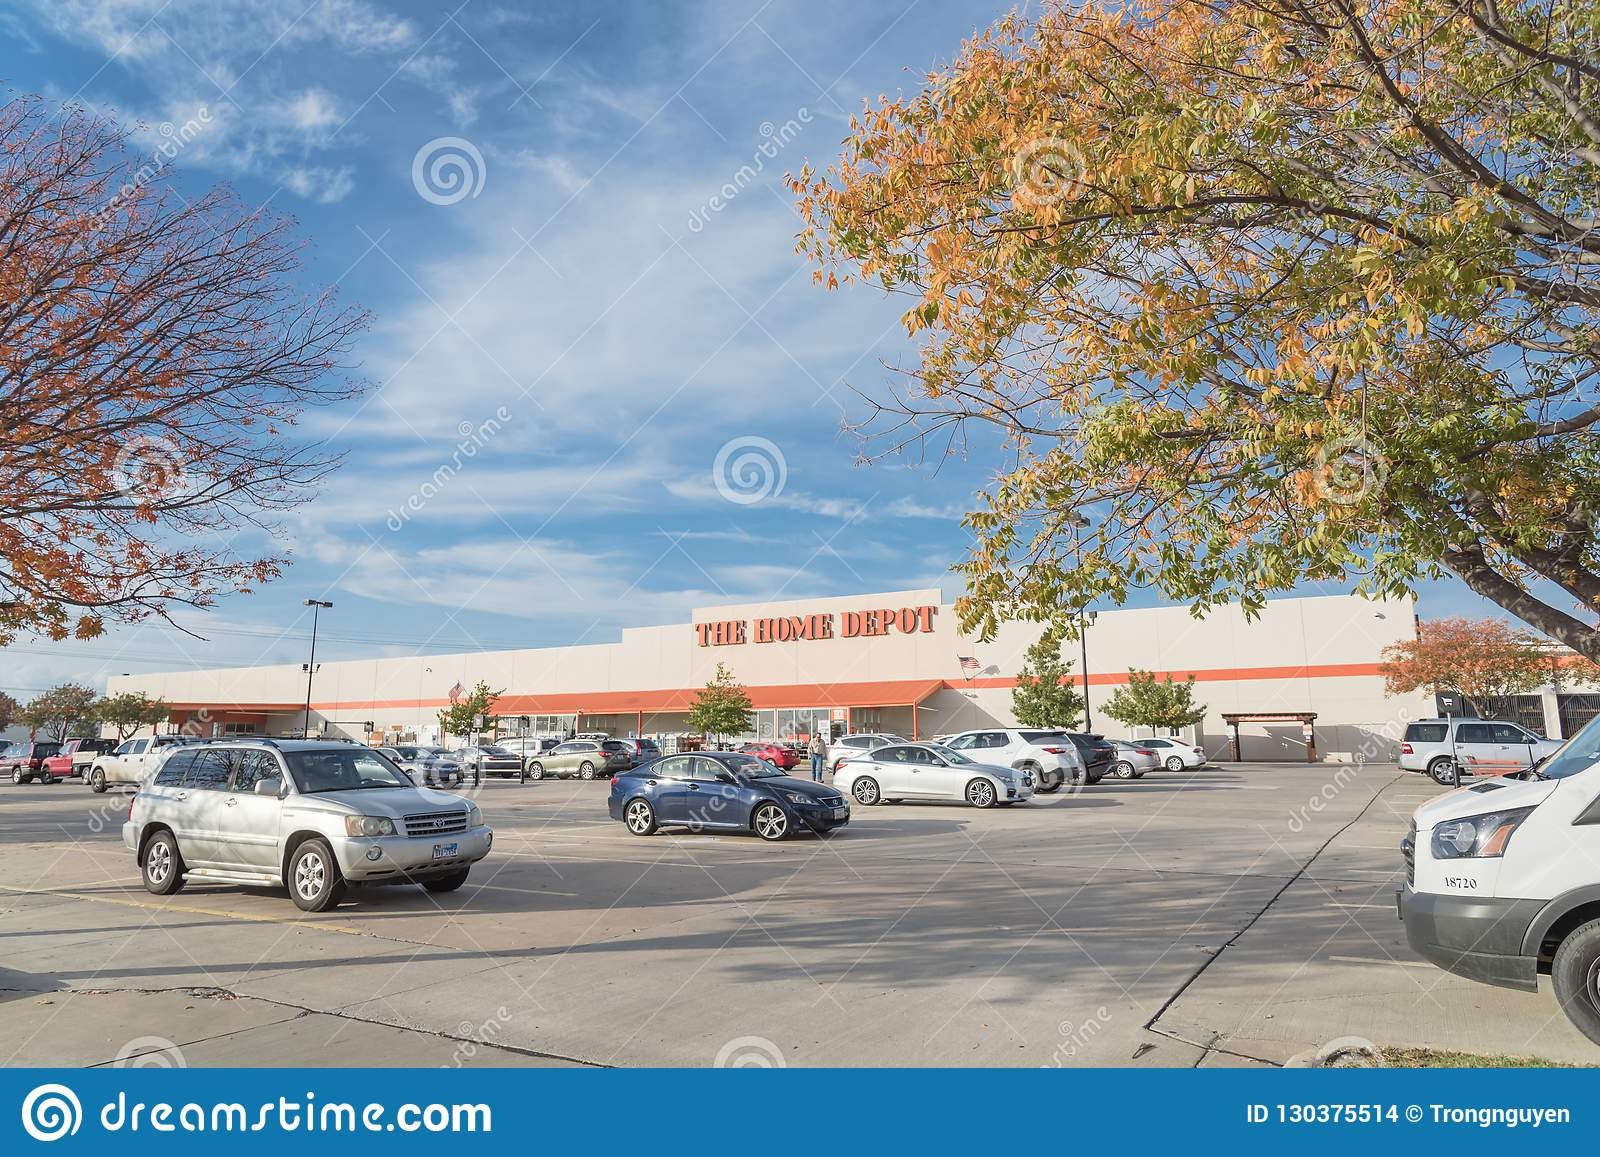 Home Depot Entrance From Parking Lots With Colorful Autumn Leave